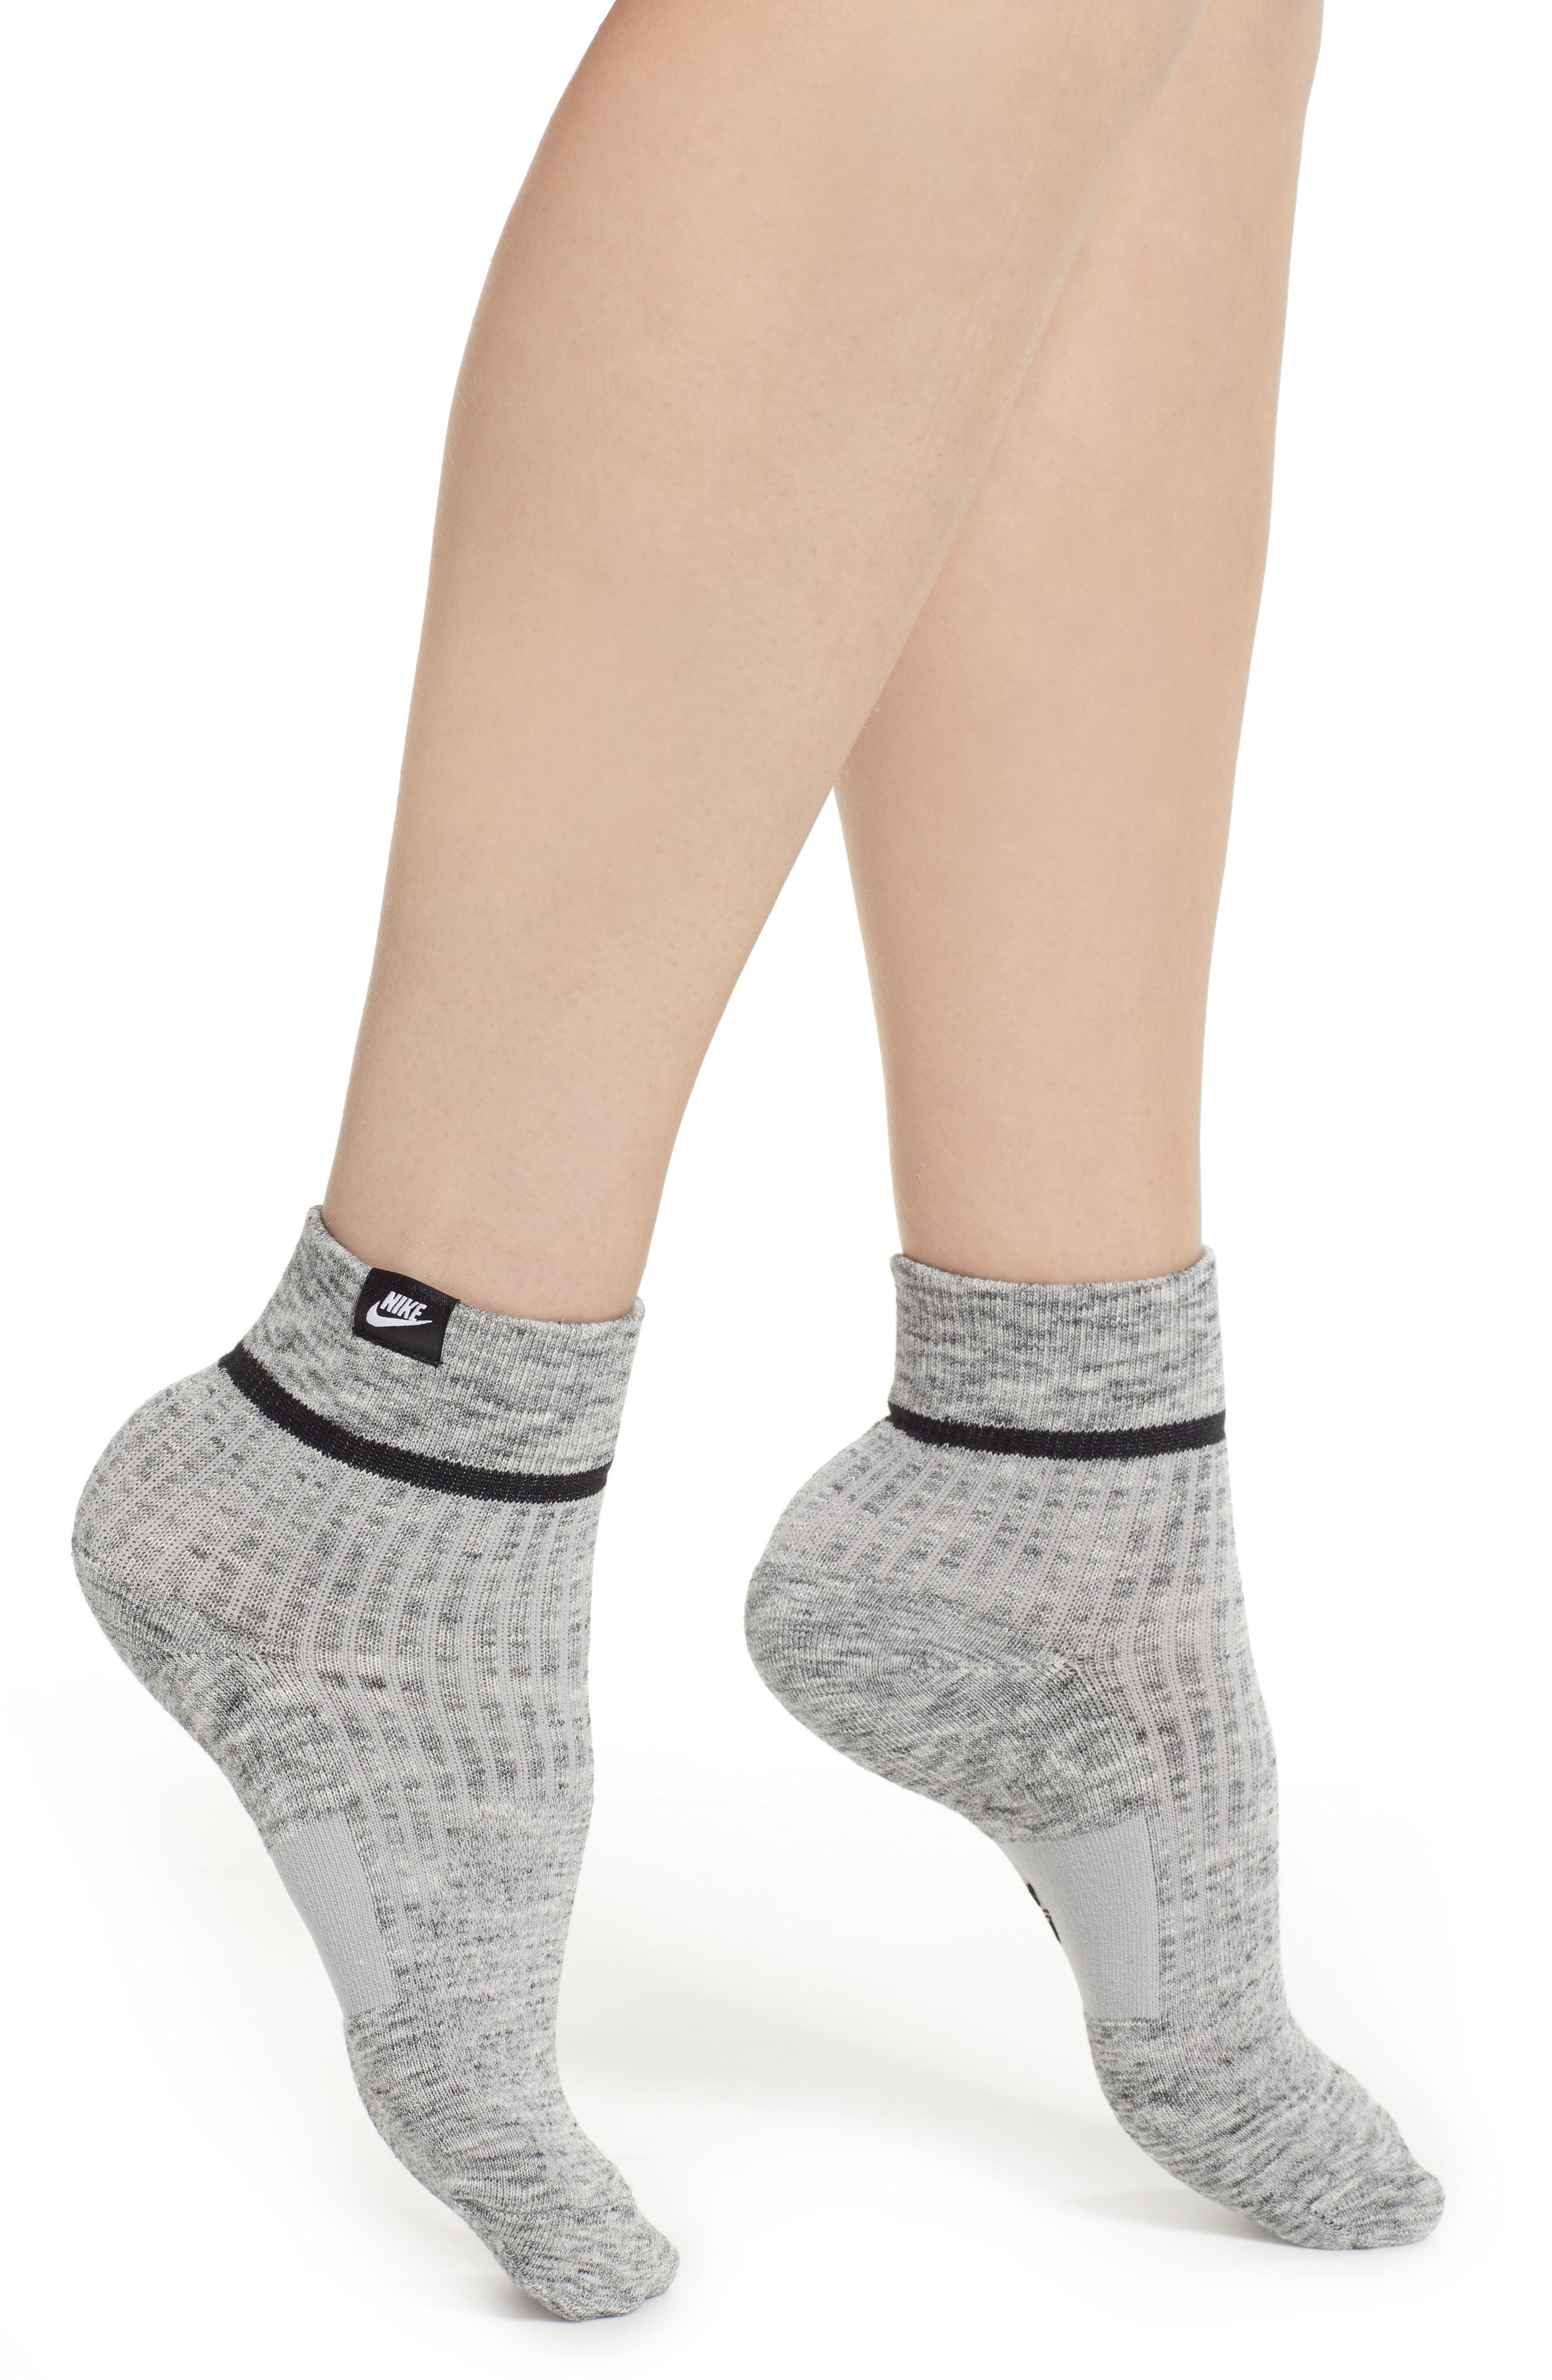 065212cbcb Nike 2-pack Snkr Sox Essential Ankle Socks in Gray - Lyst